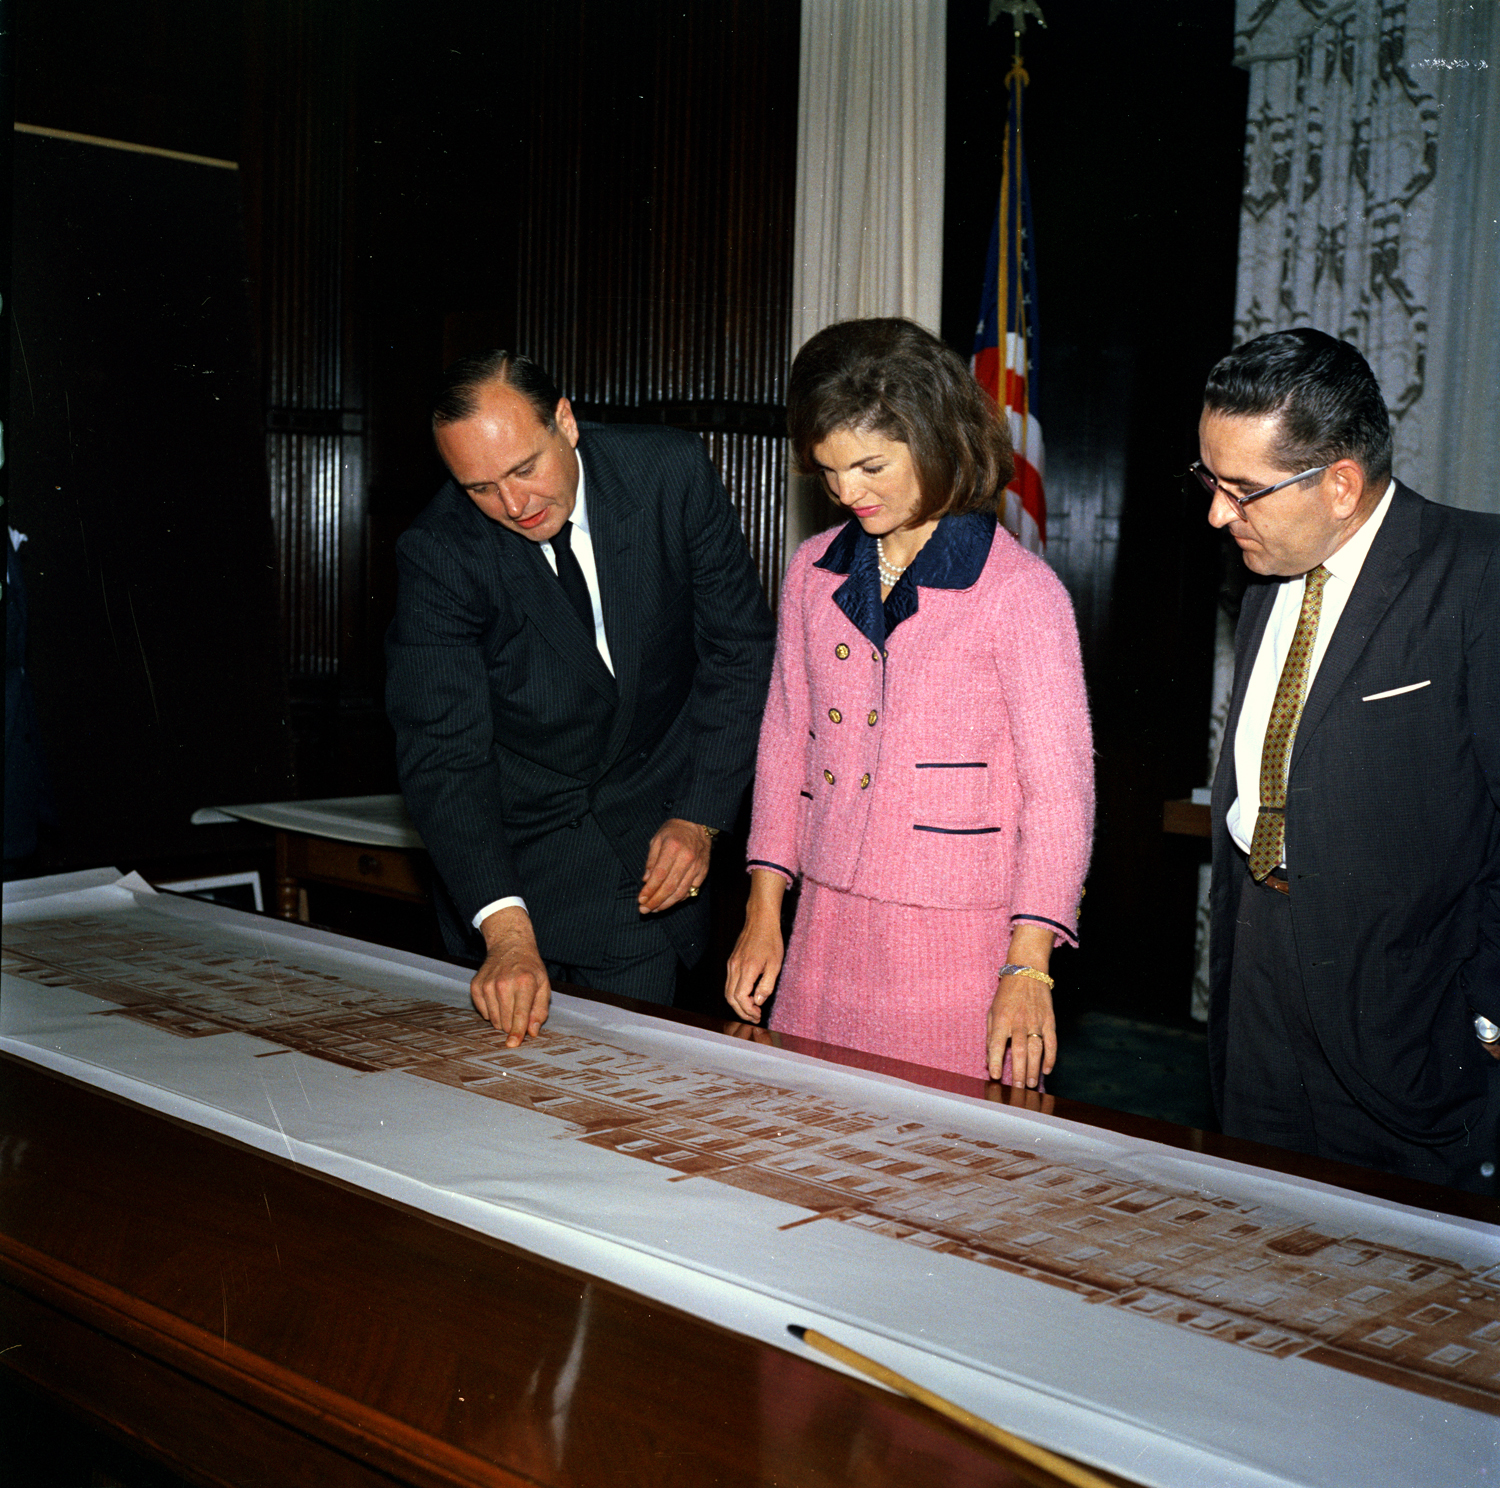 Jacqueline Kennedy reviews architectural elevations of the Renwick Gallery, John F. Kennedy Presidential Library